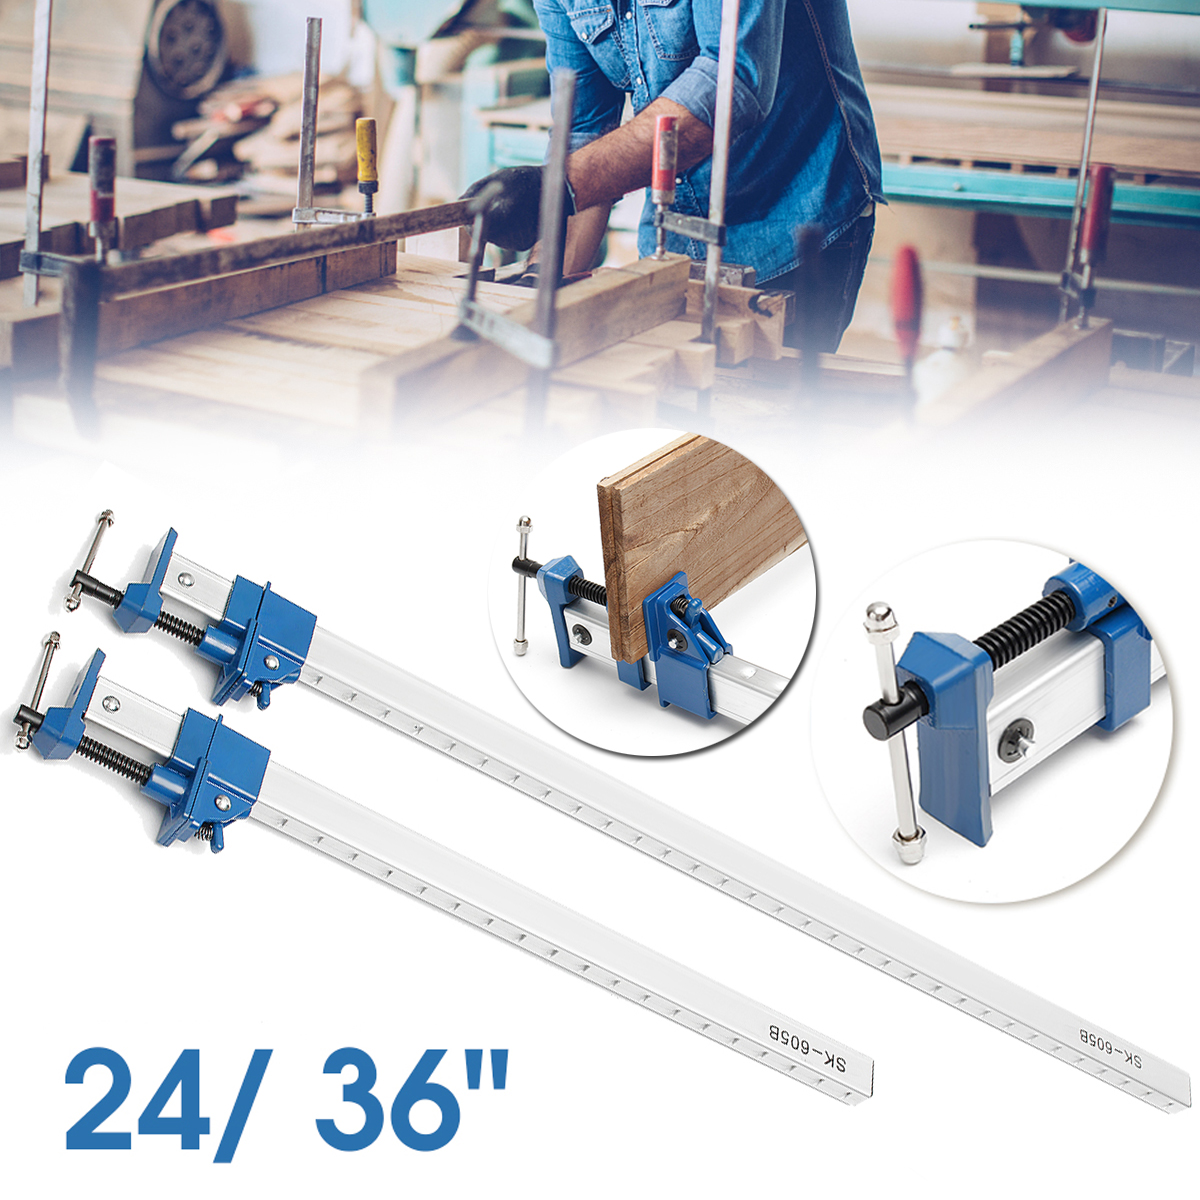 24/36 1/2/4Pcs DIY Heavy Duty F Clamp T Bar Wood Clamps for Woodworking Quick Release Wood Clamps Holder Cramp Grip Hand Tools цены онлайн